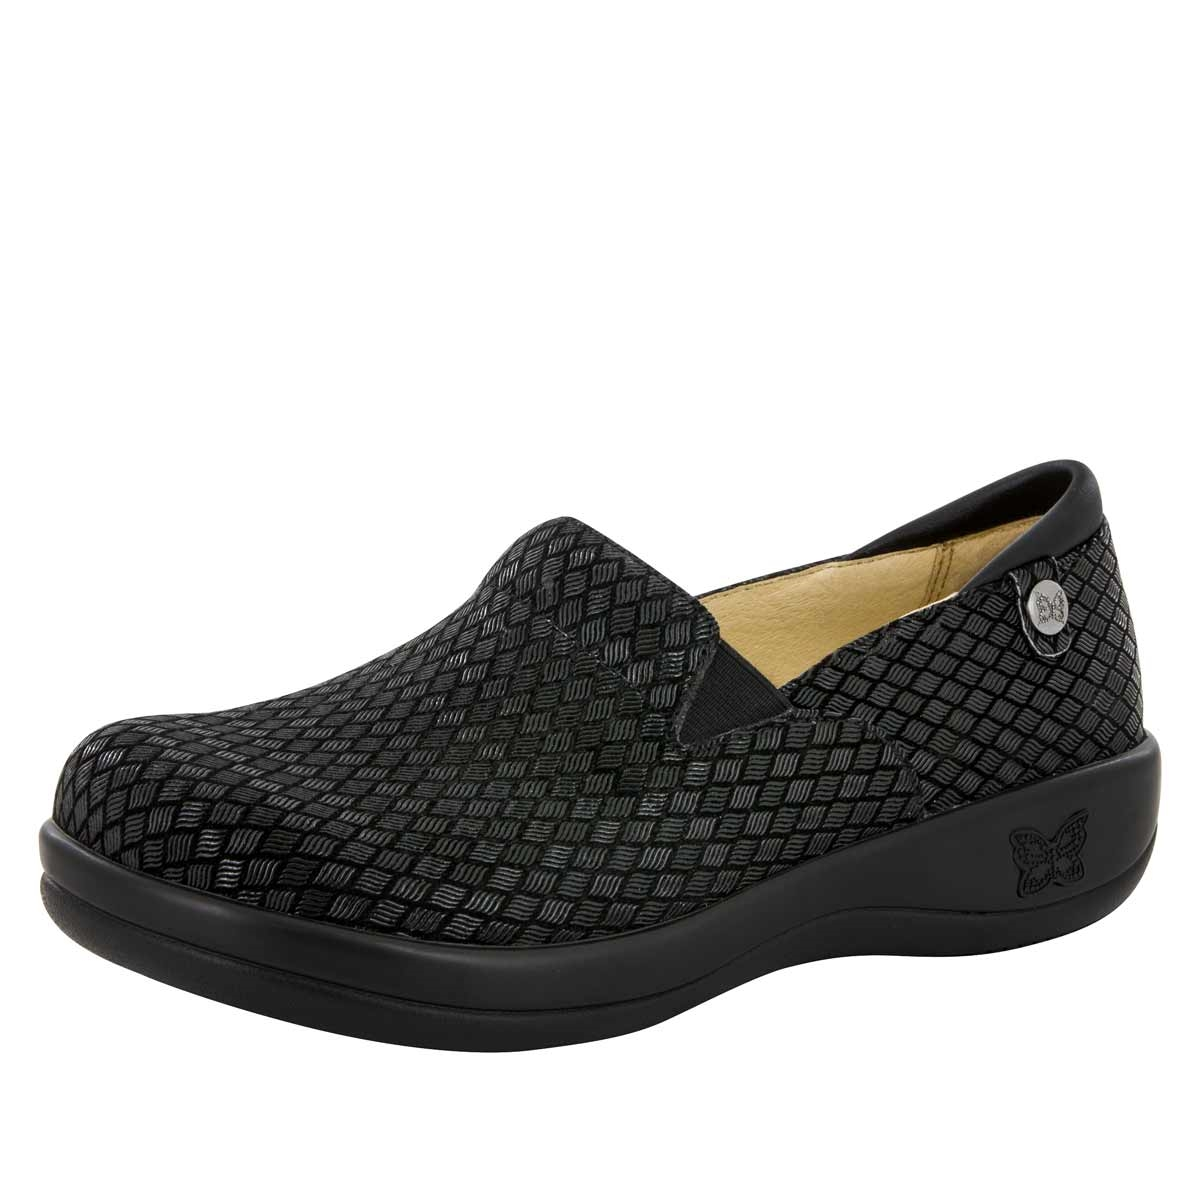 Black Alegria Shoes On Sale